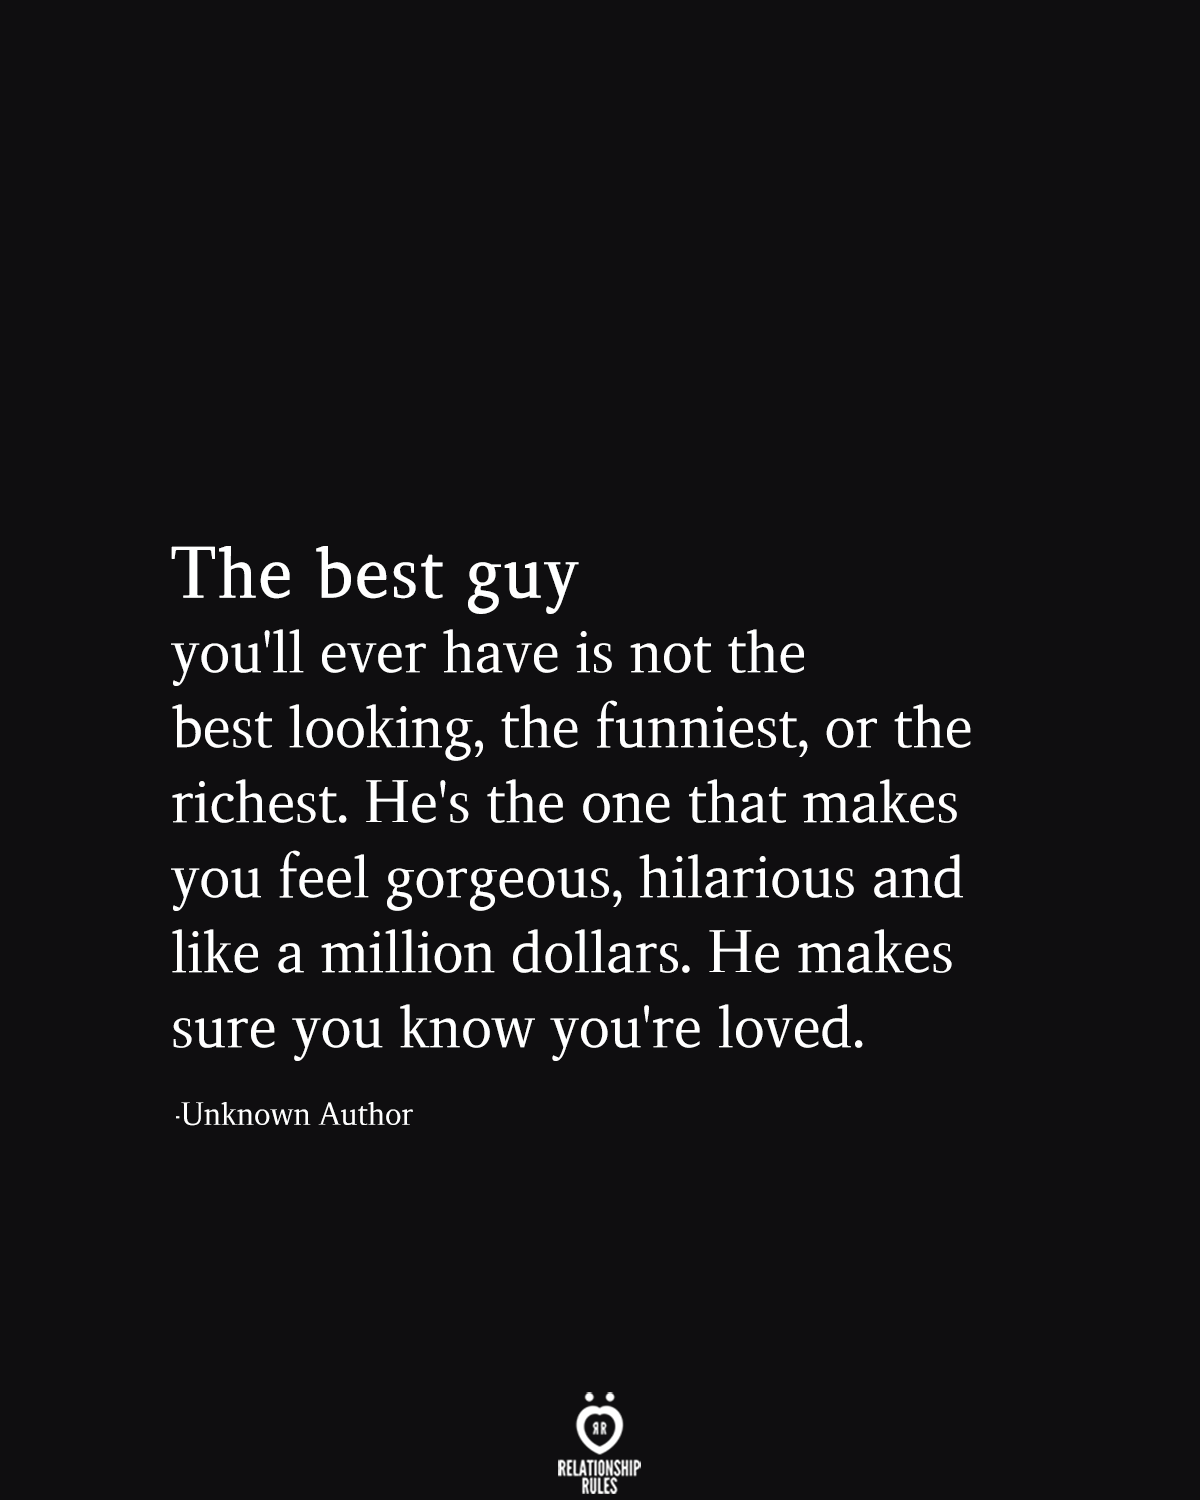 The Best Guy You Ll Ever Have Is Not The Best Looking The Funniest Or The Richest True Quotes Love Quotes Words Quotes